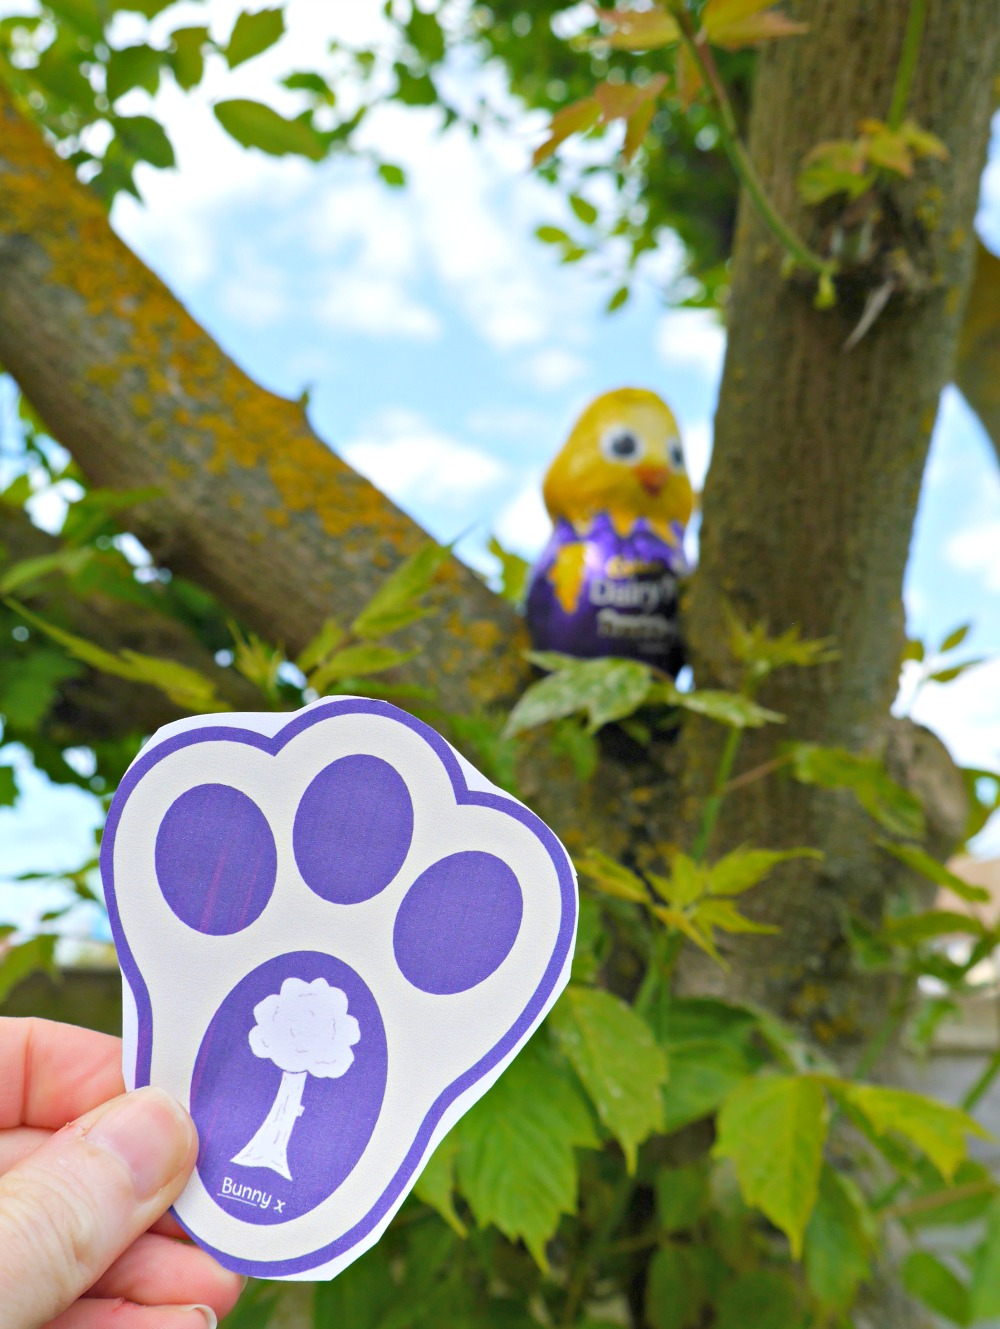 Easter egg hunt - how to create your own hunt and create your own clues